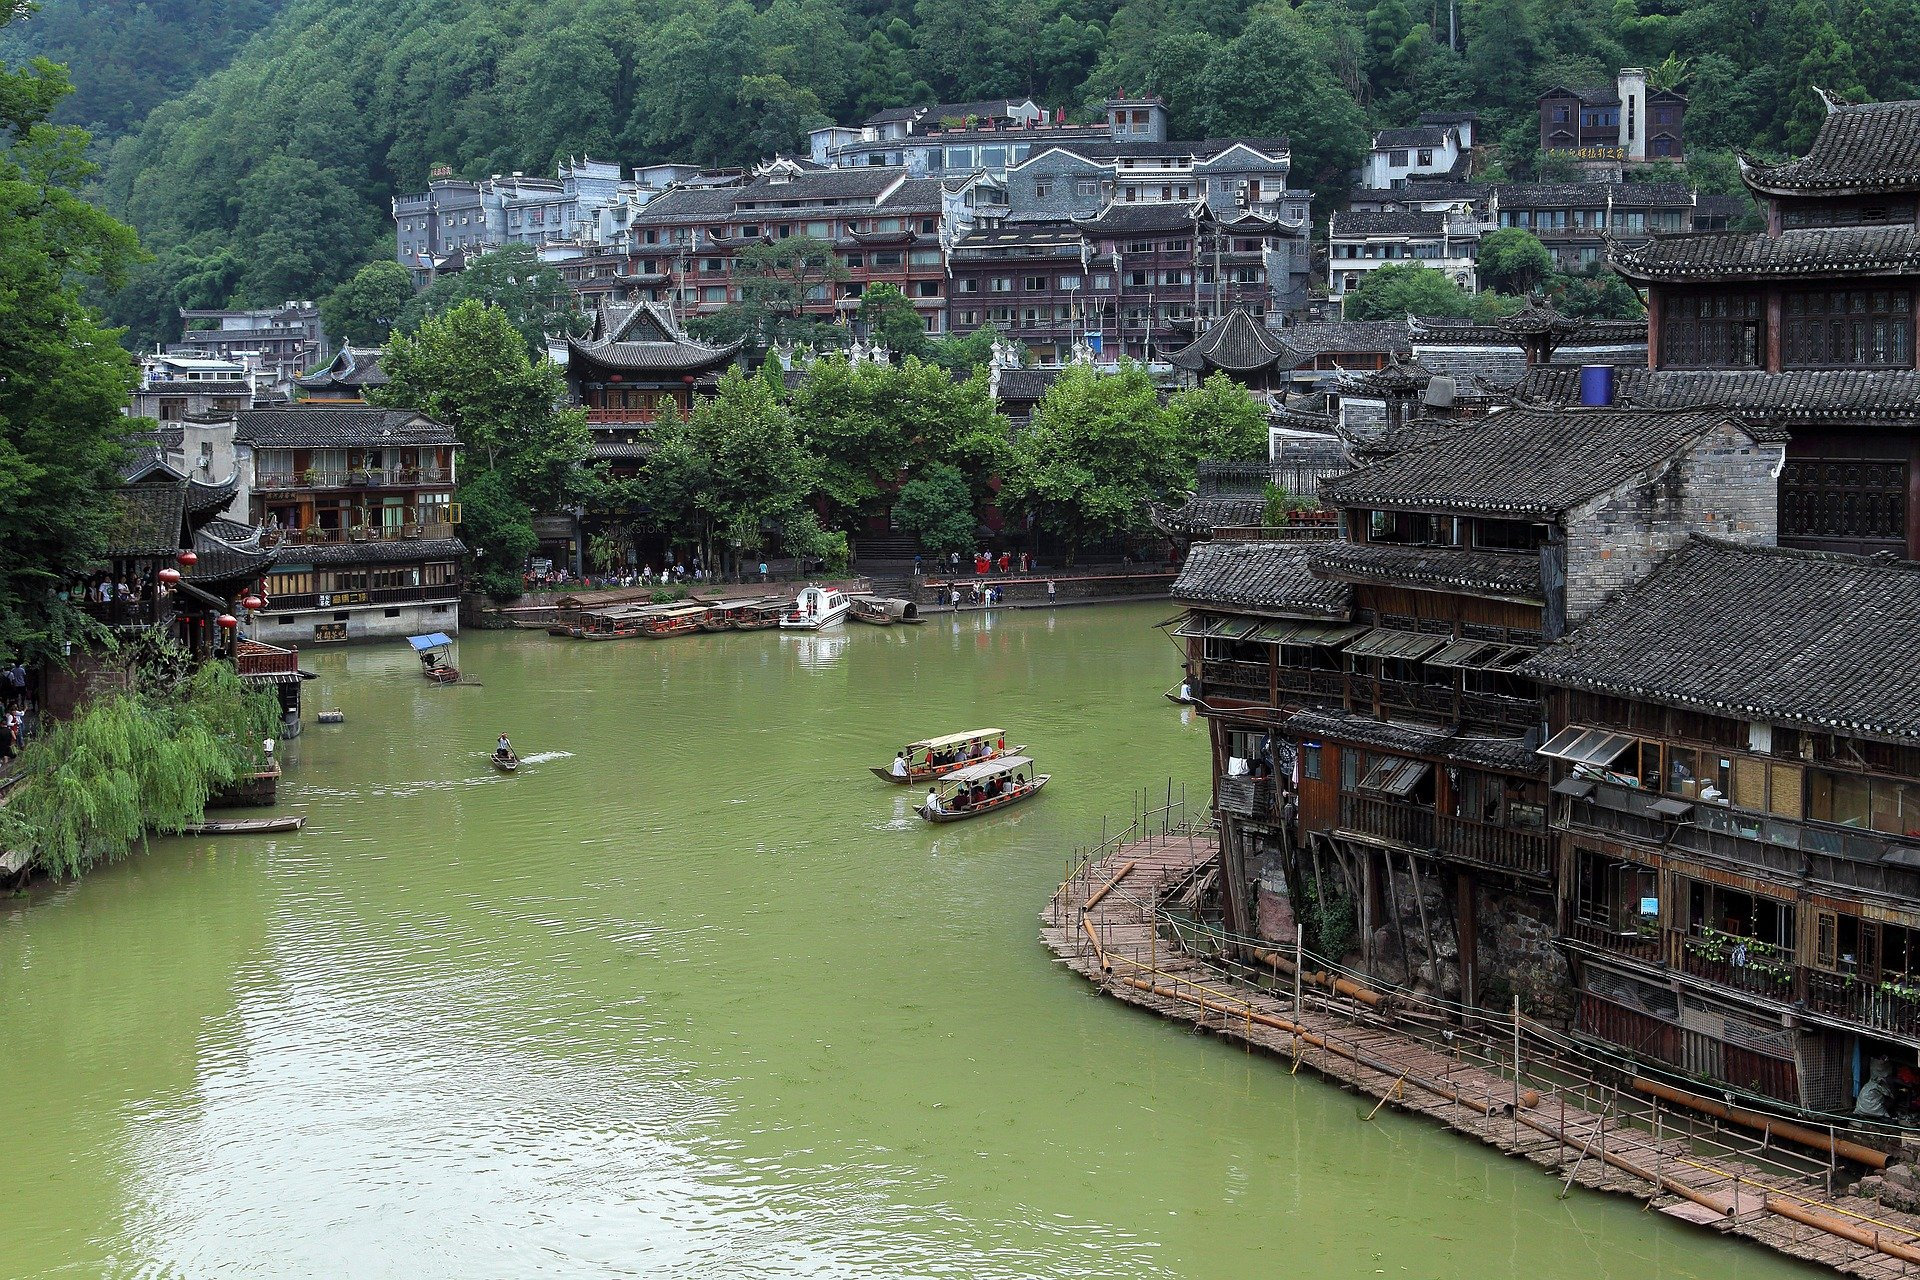 Fenghuang City in Hunan Province